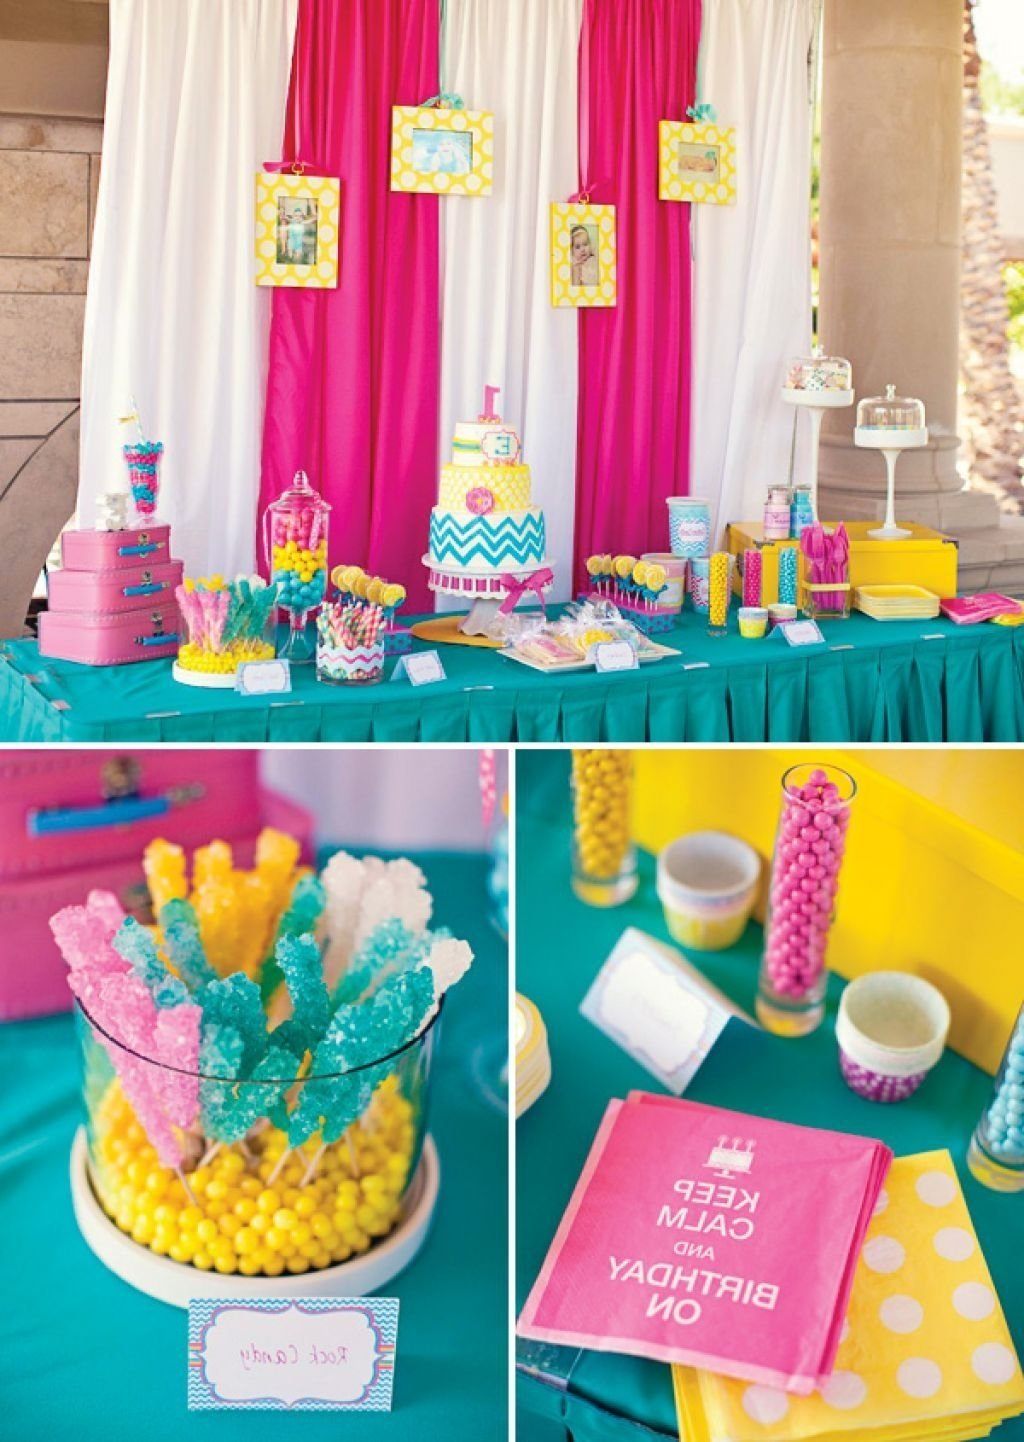 10 Fabulous 3 Year Old Girl Birthday Ideas Outdoor Party Decorations Google Search Madeline 38